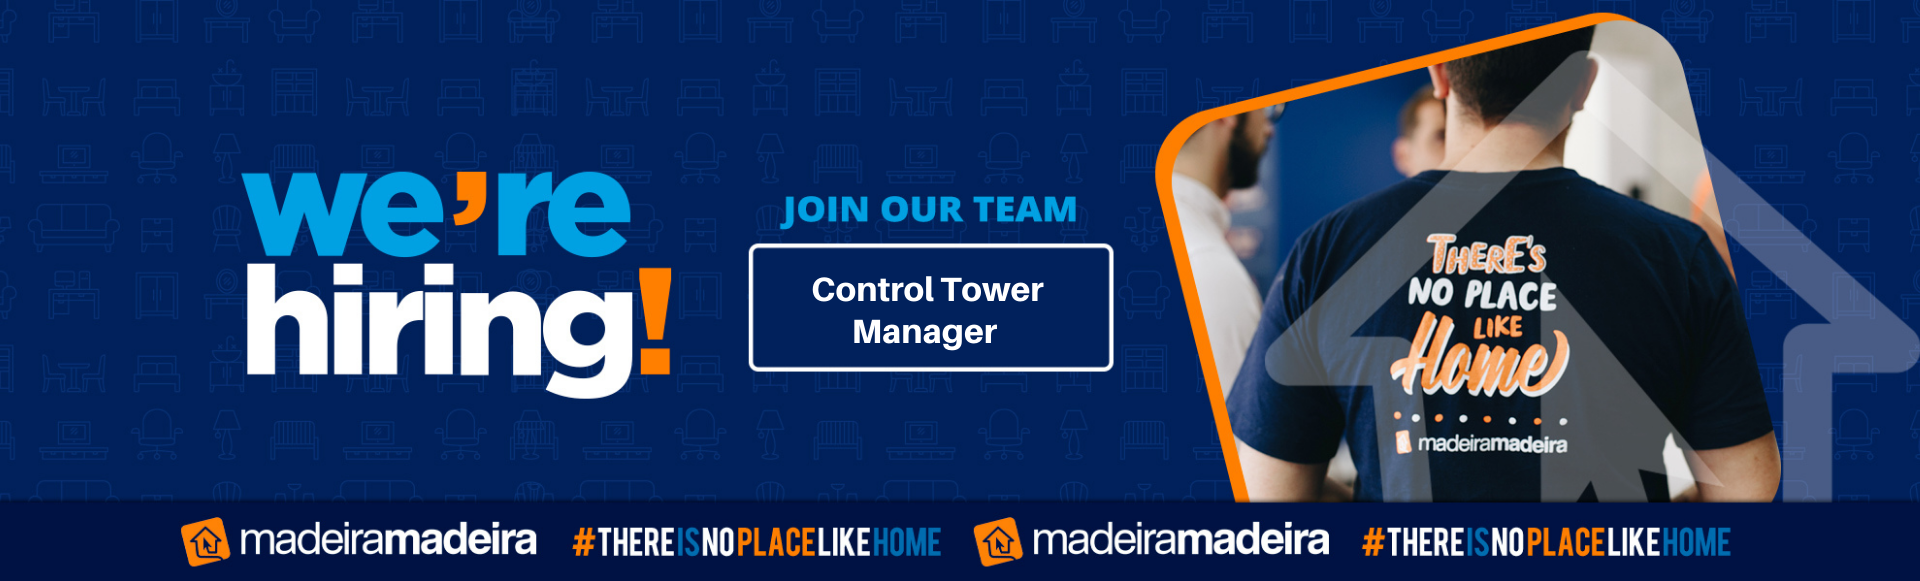 Control Tower Manager